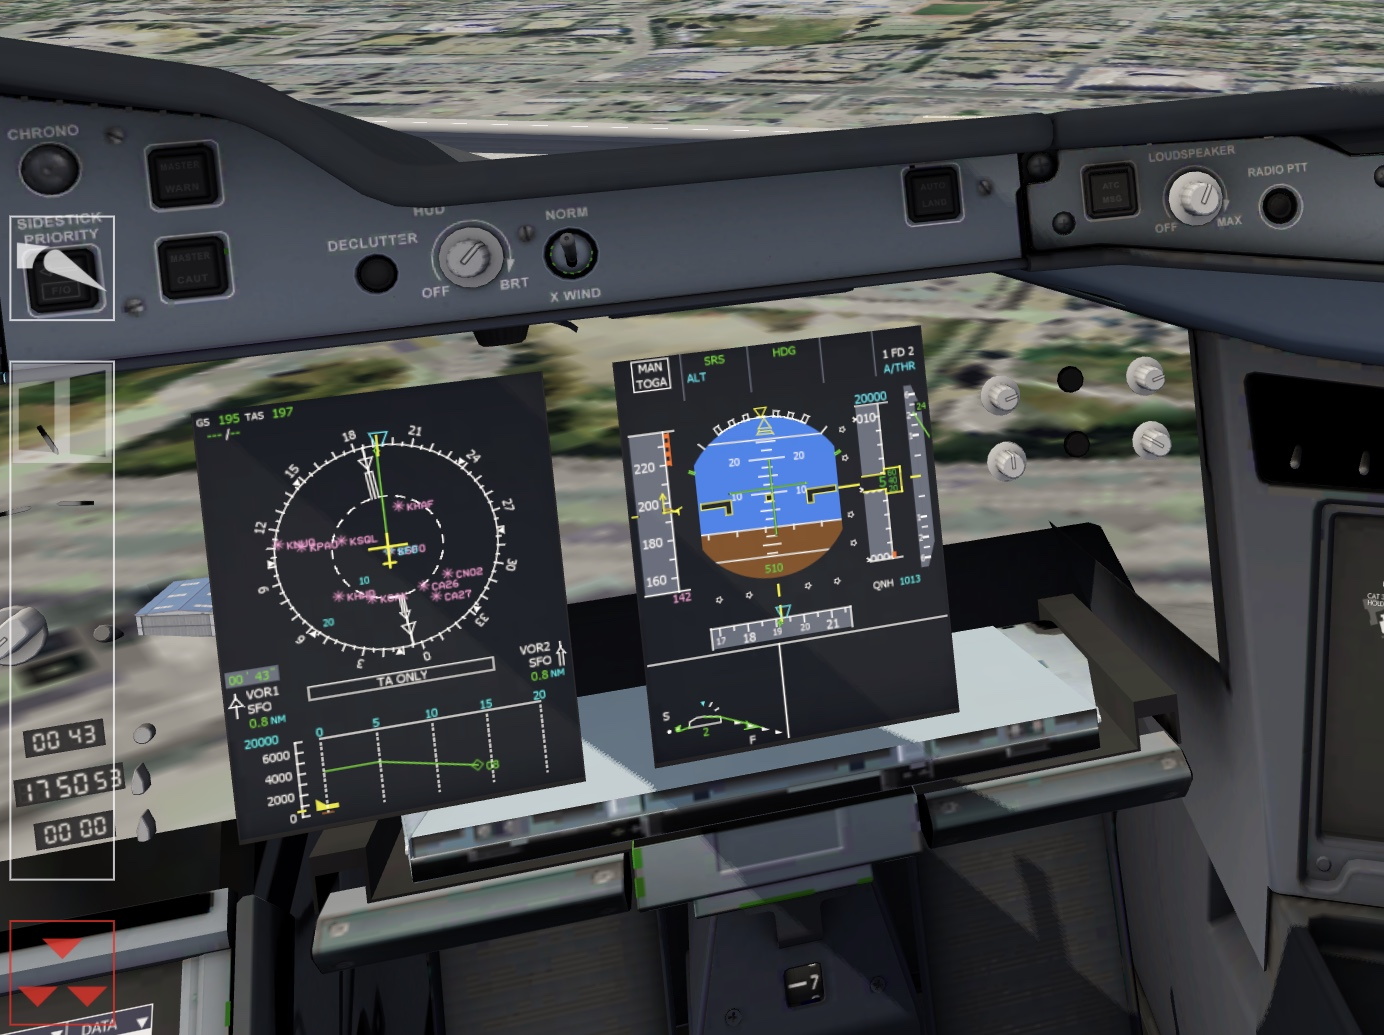 Aerofly FS 2019 - Feedback and credit! - General discussions - IPACS